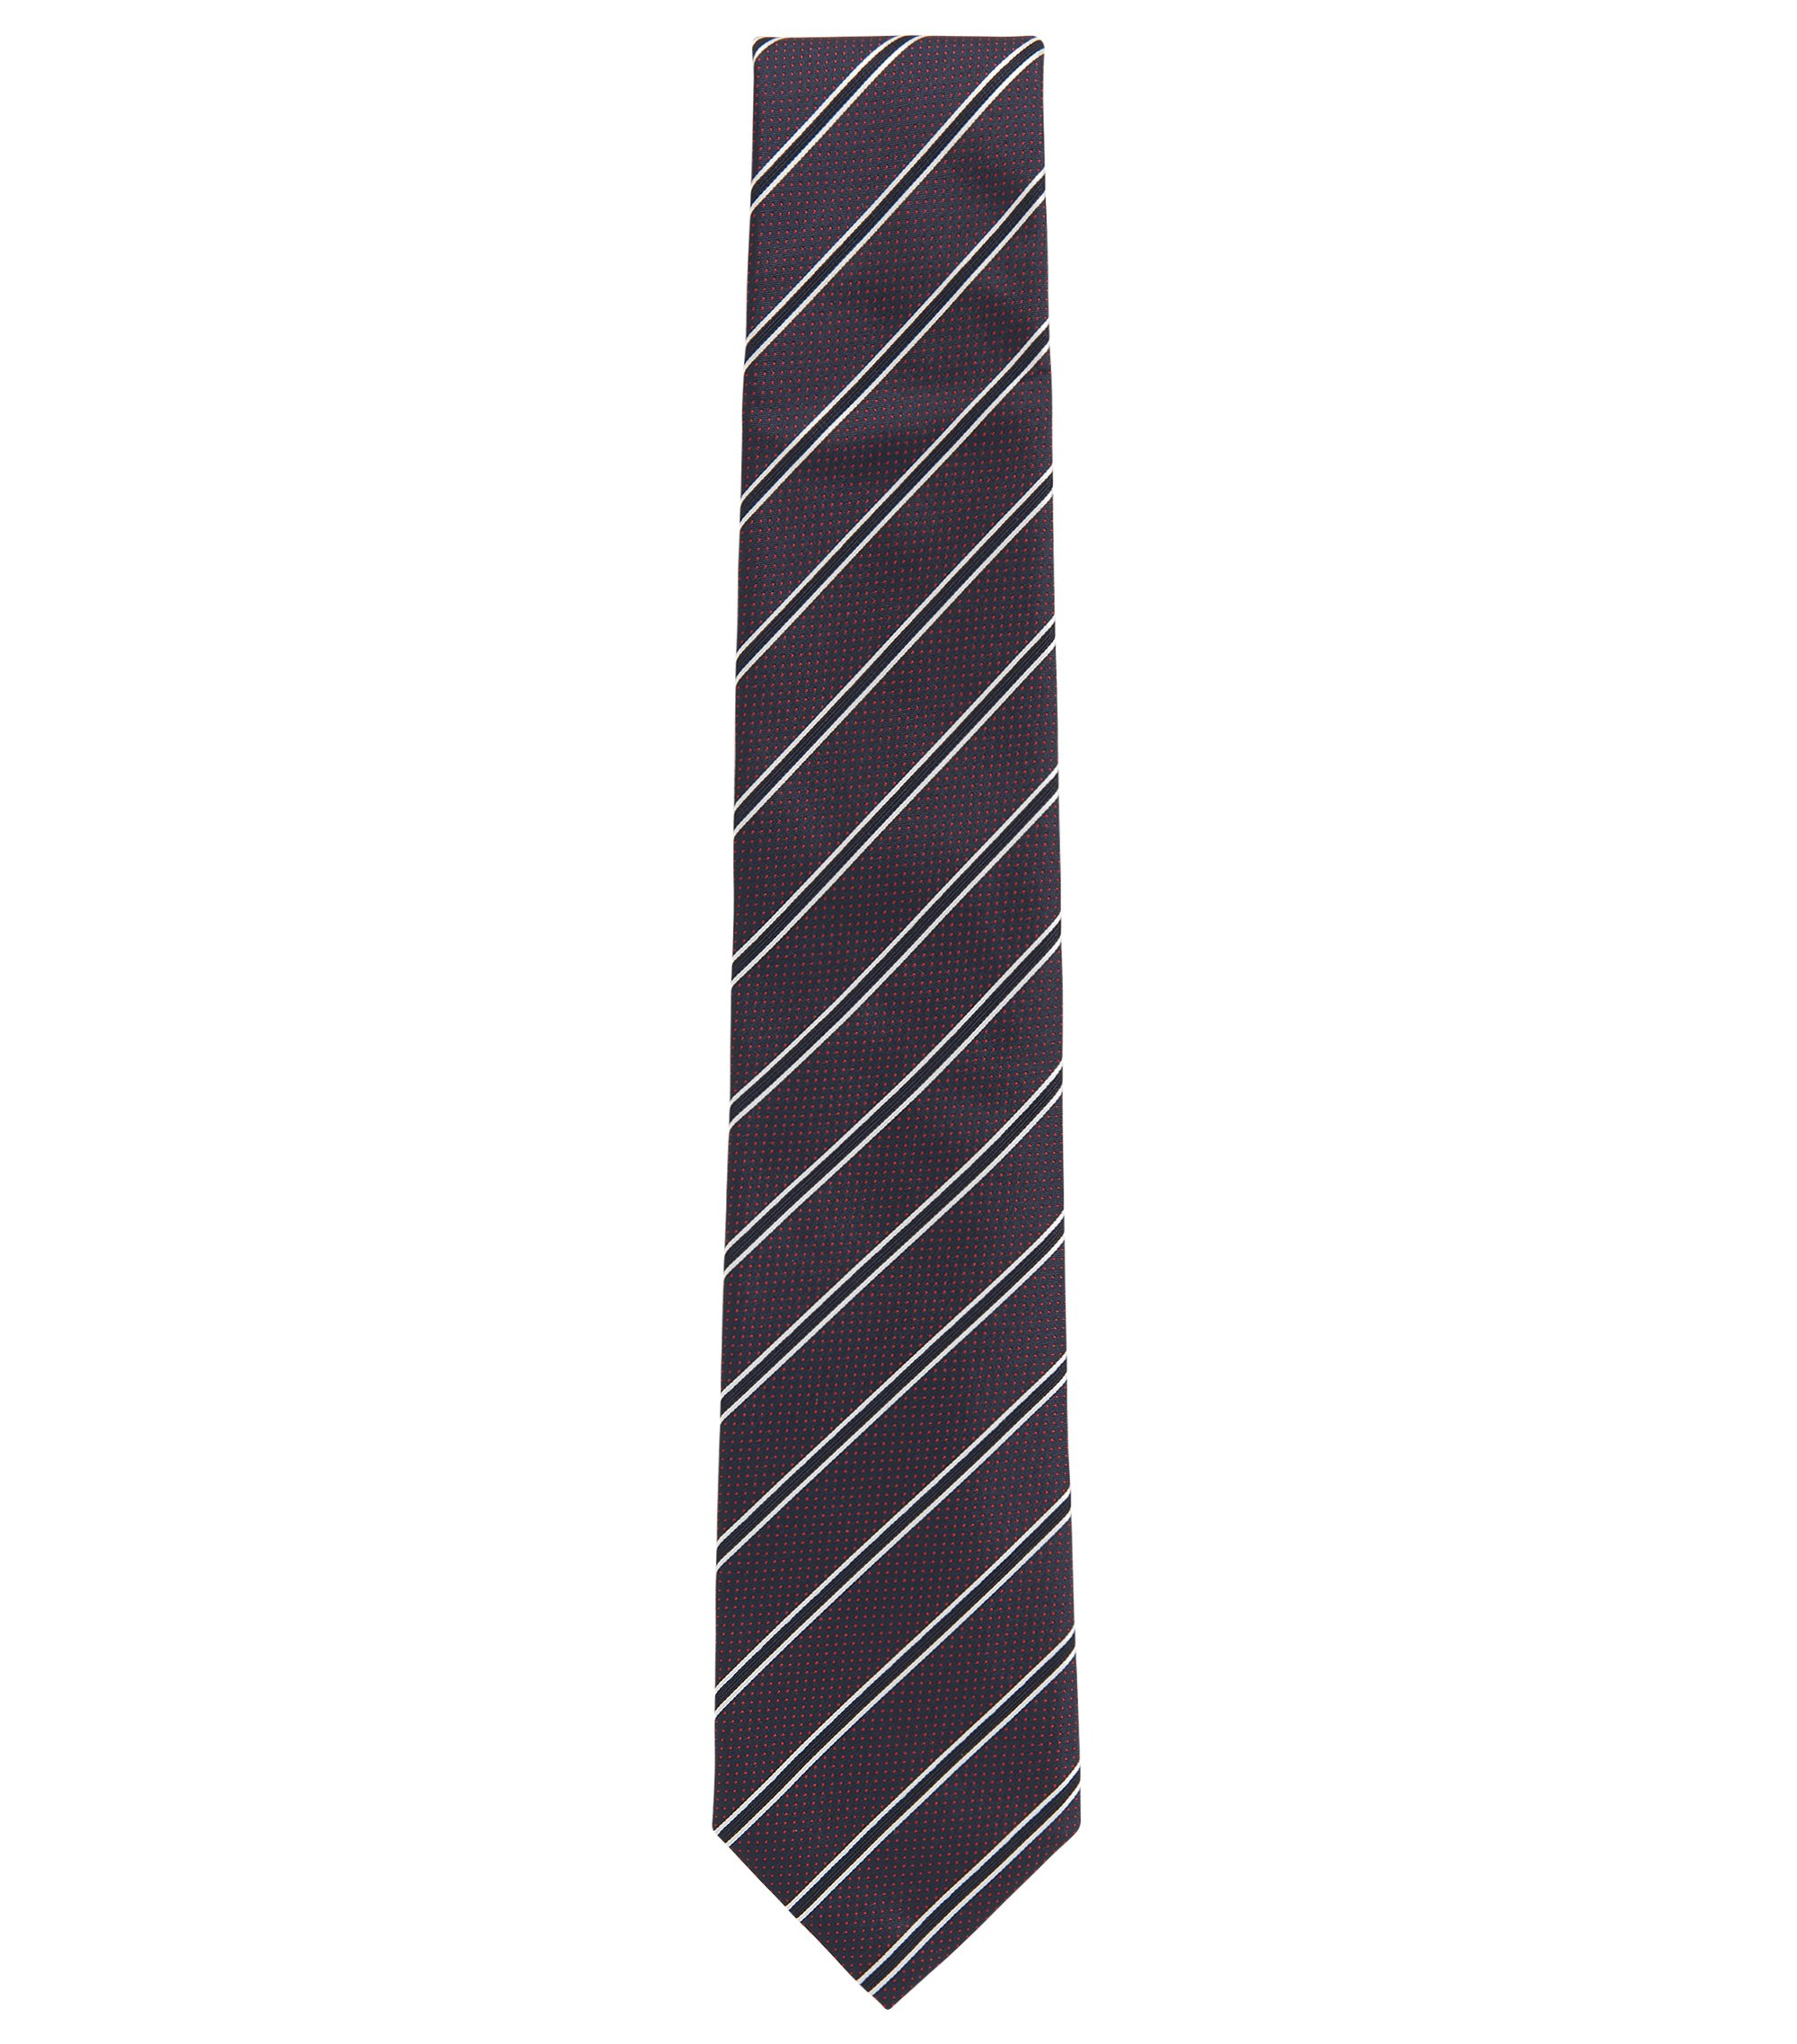 Striped Italian Silk Tie, Dark pink